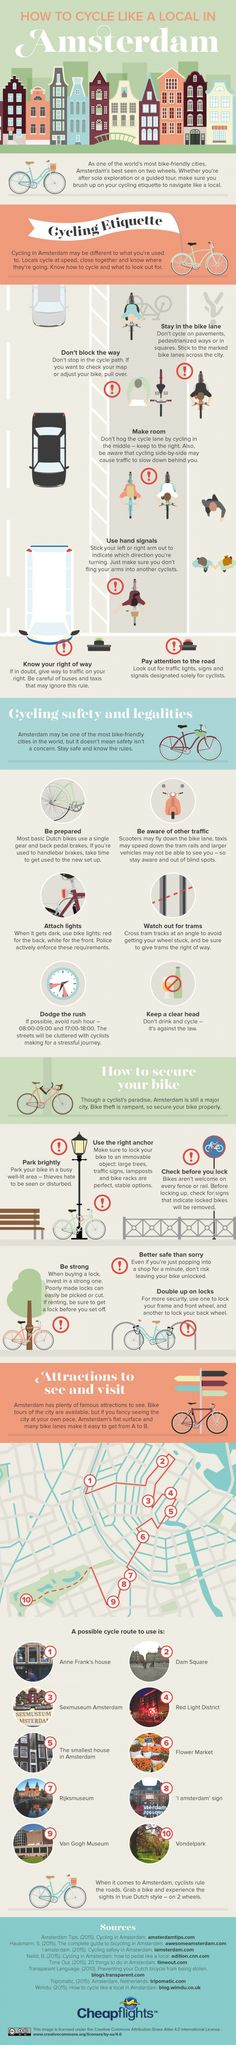 How to Cycle Like a Local in Amsterdam Infographic